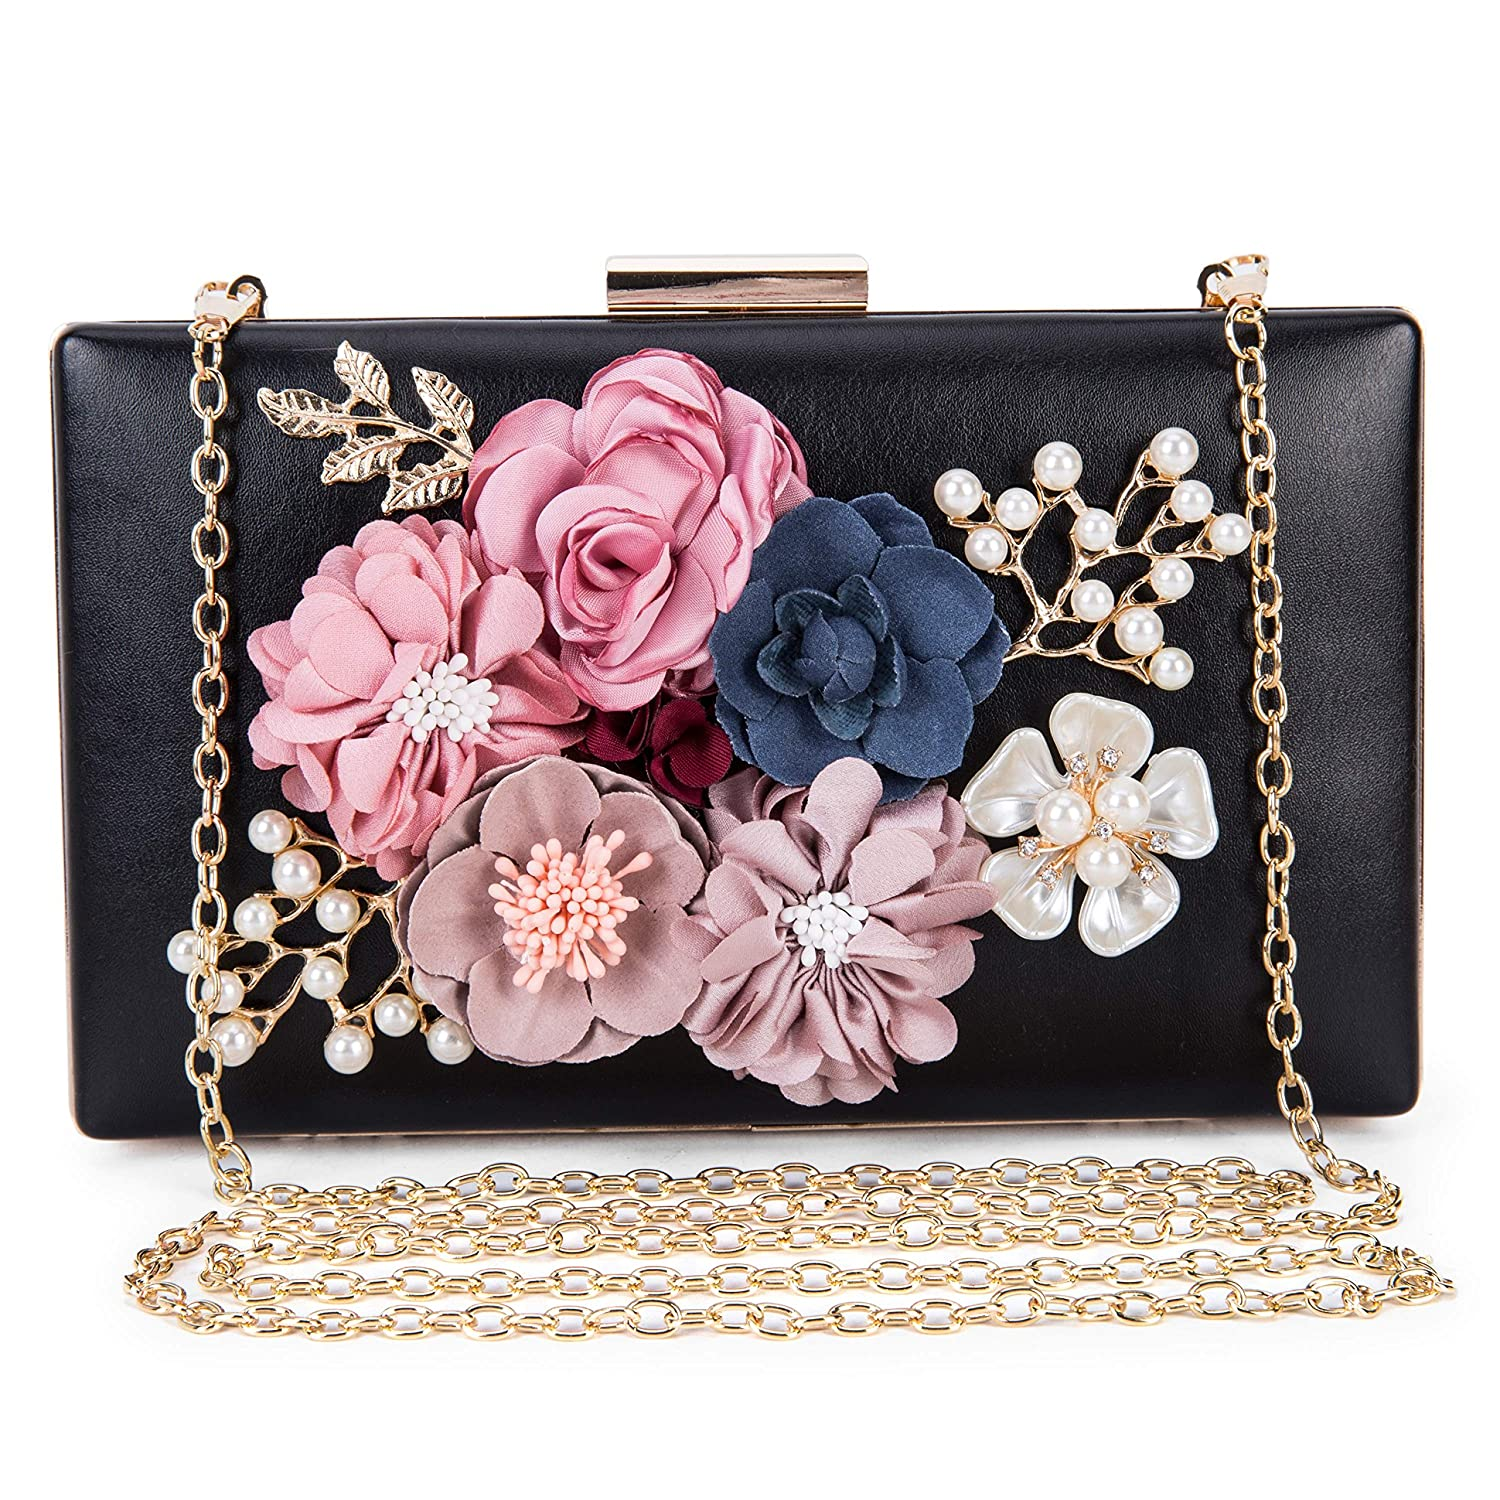 033933531cfd Women s New Evening Handbags Flower Clutch Pearl Bags Wedding Clutch Purse  fit for Cocktail Wedding (Black)  Handbags  Amazon.com